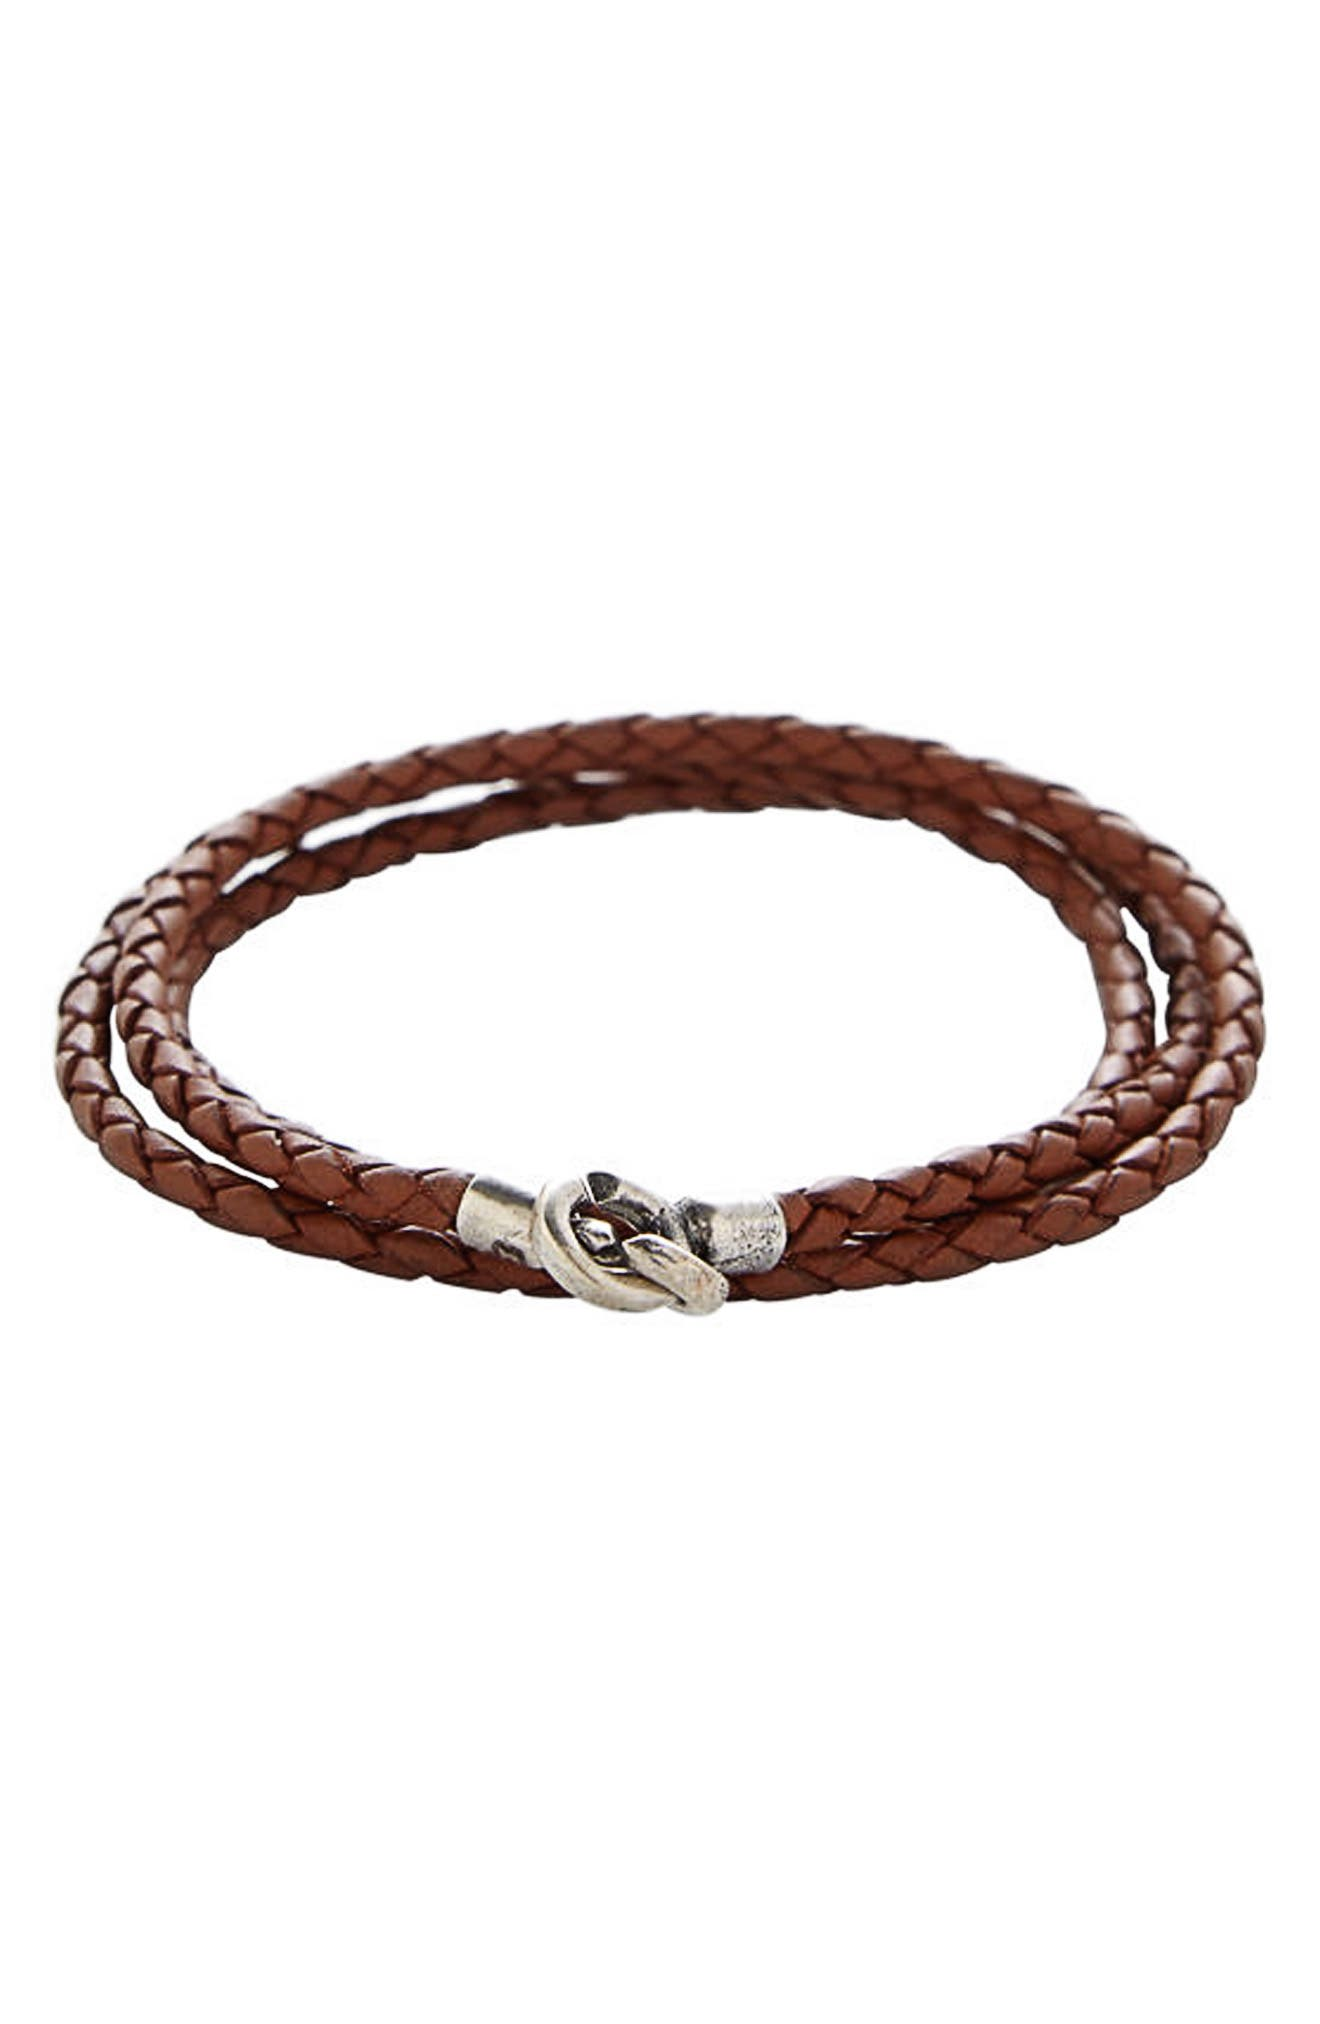 Leather Wrap Bracelet,                             Main thumbnail 1, color,                             SADDLE